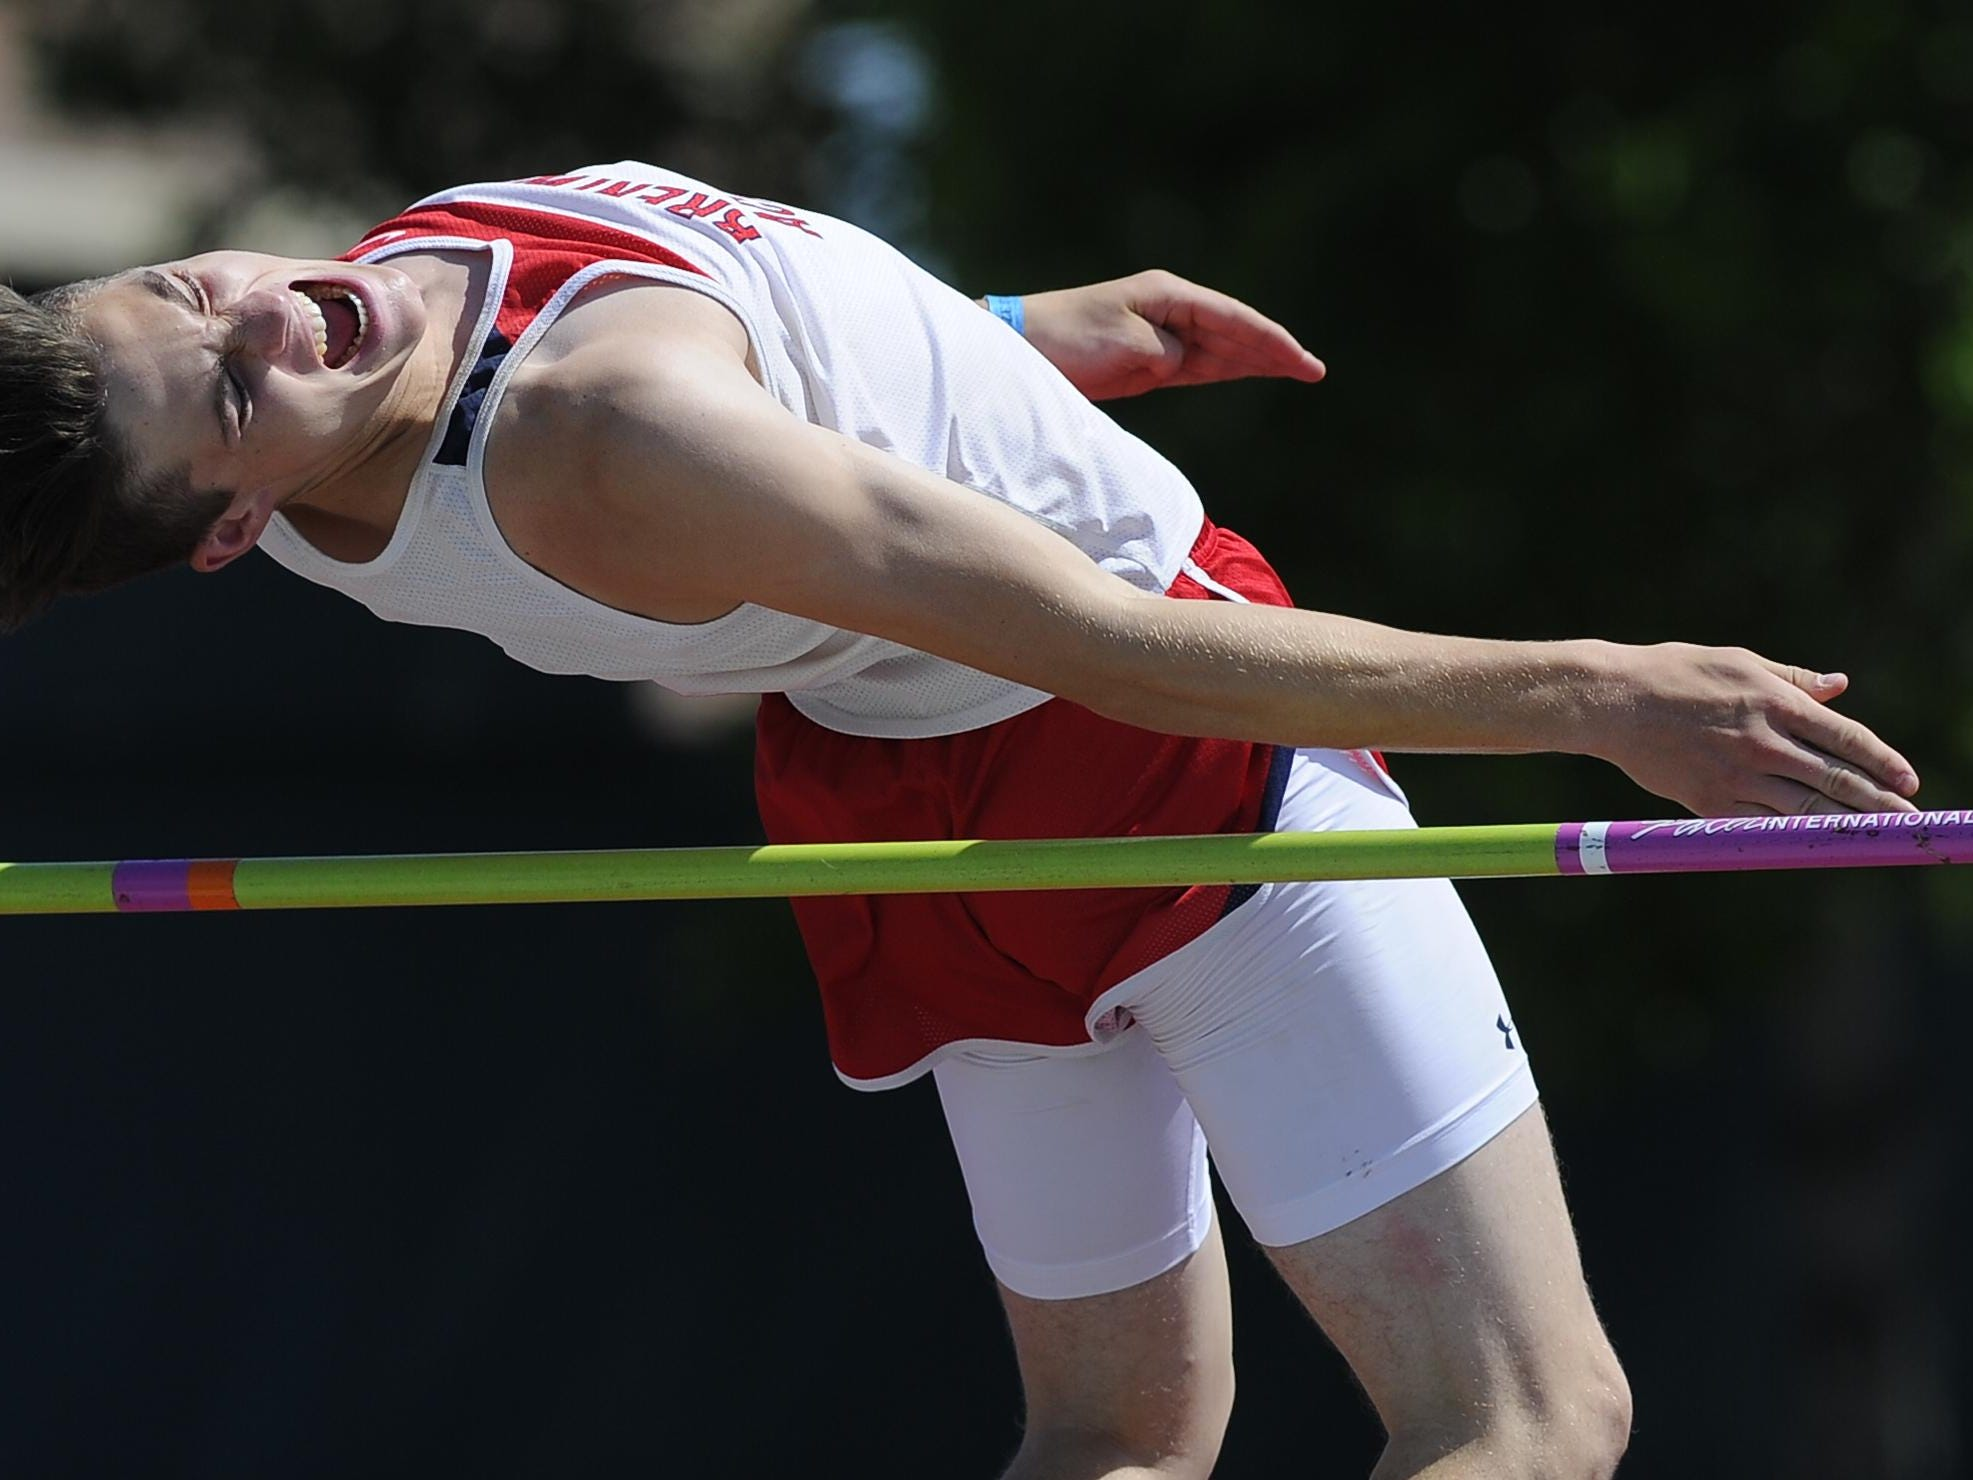 Brentwood Academy decathlete George Patrick recently posted a fourth-place finish at the IAAF World Youth Championships in Cali, Colombia.